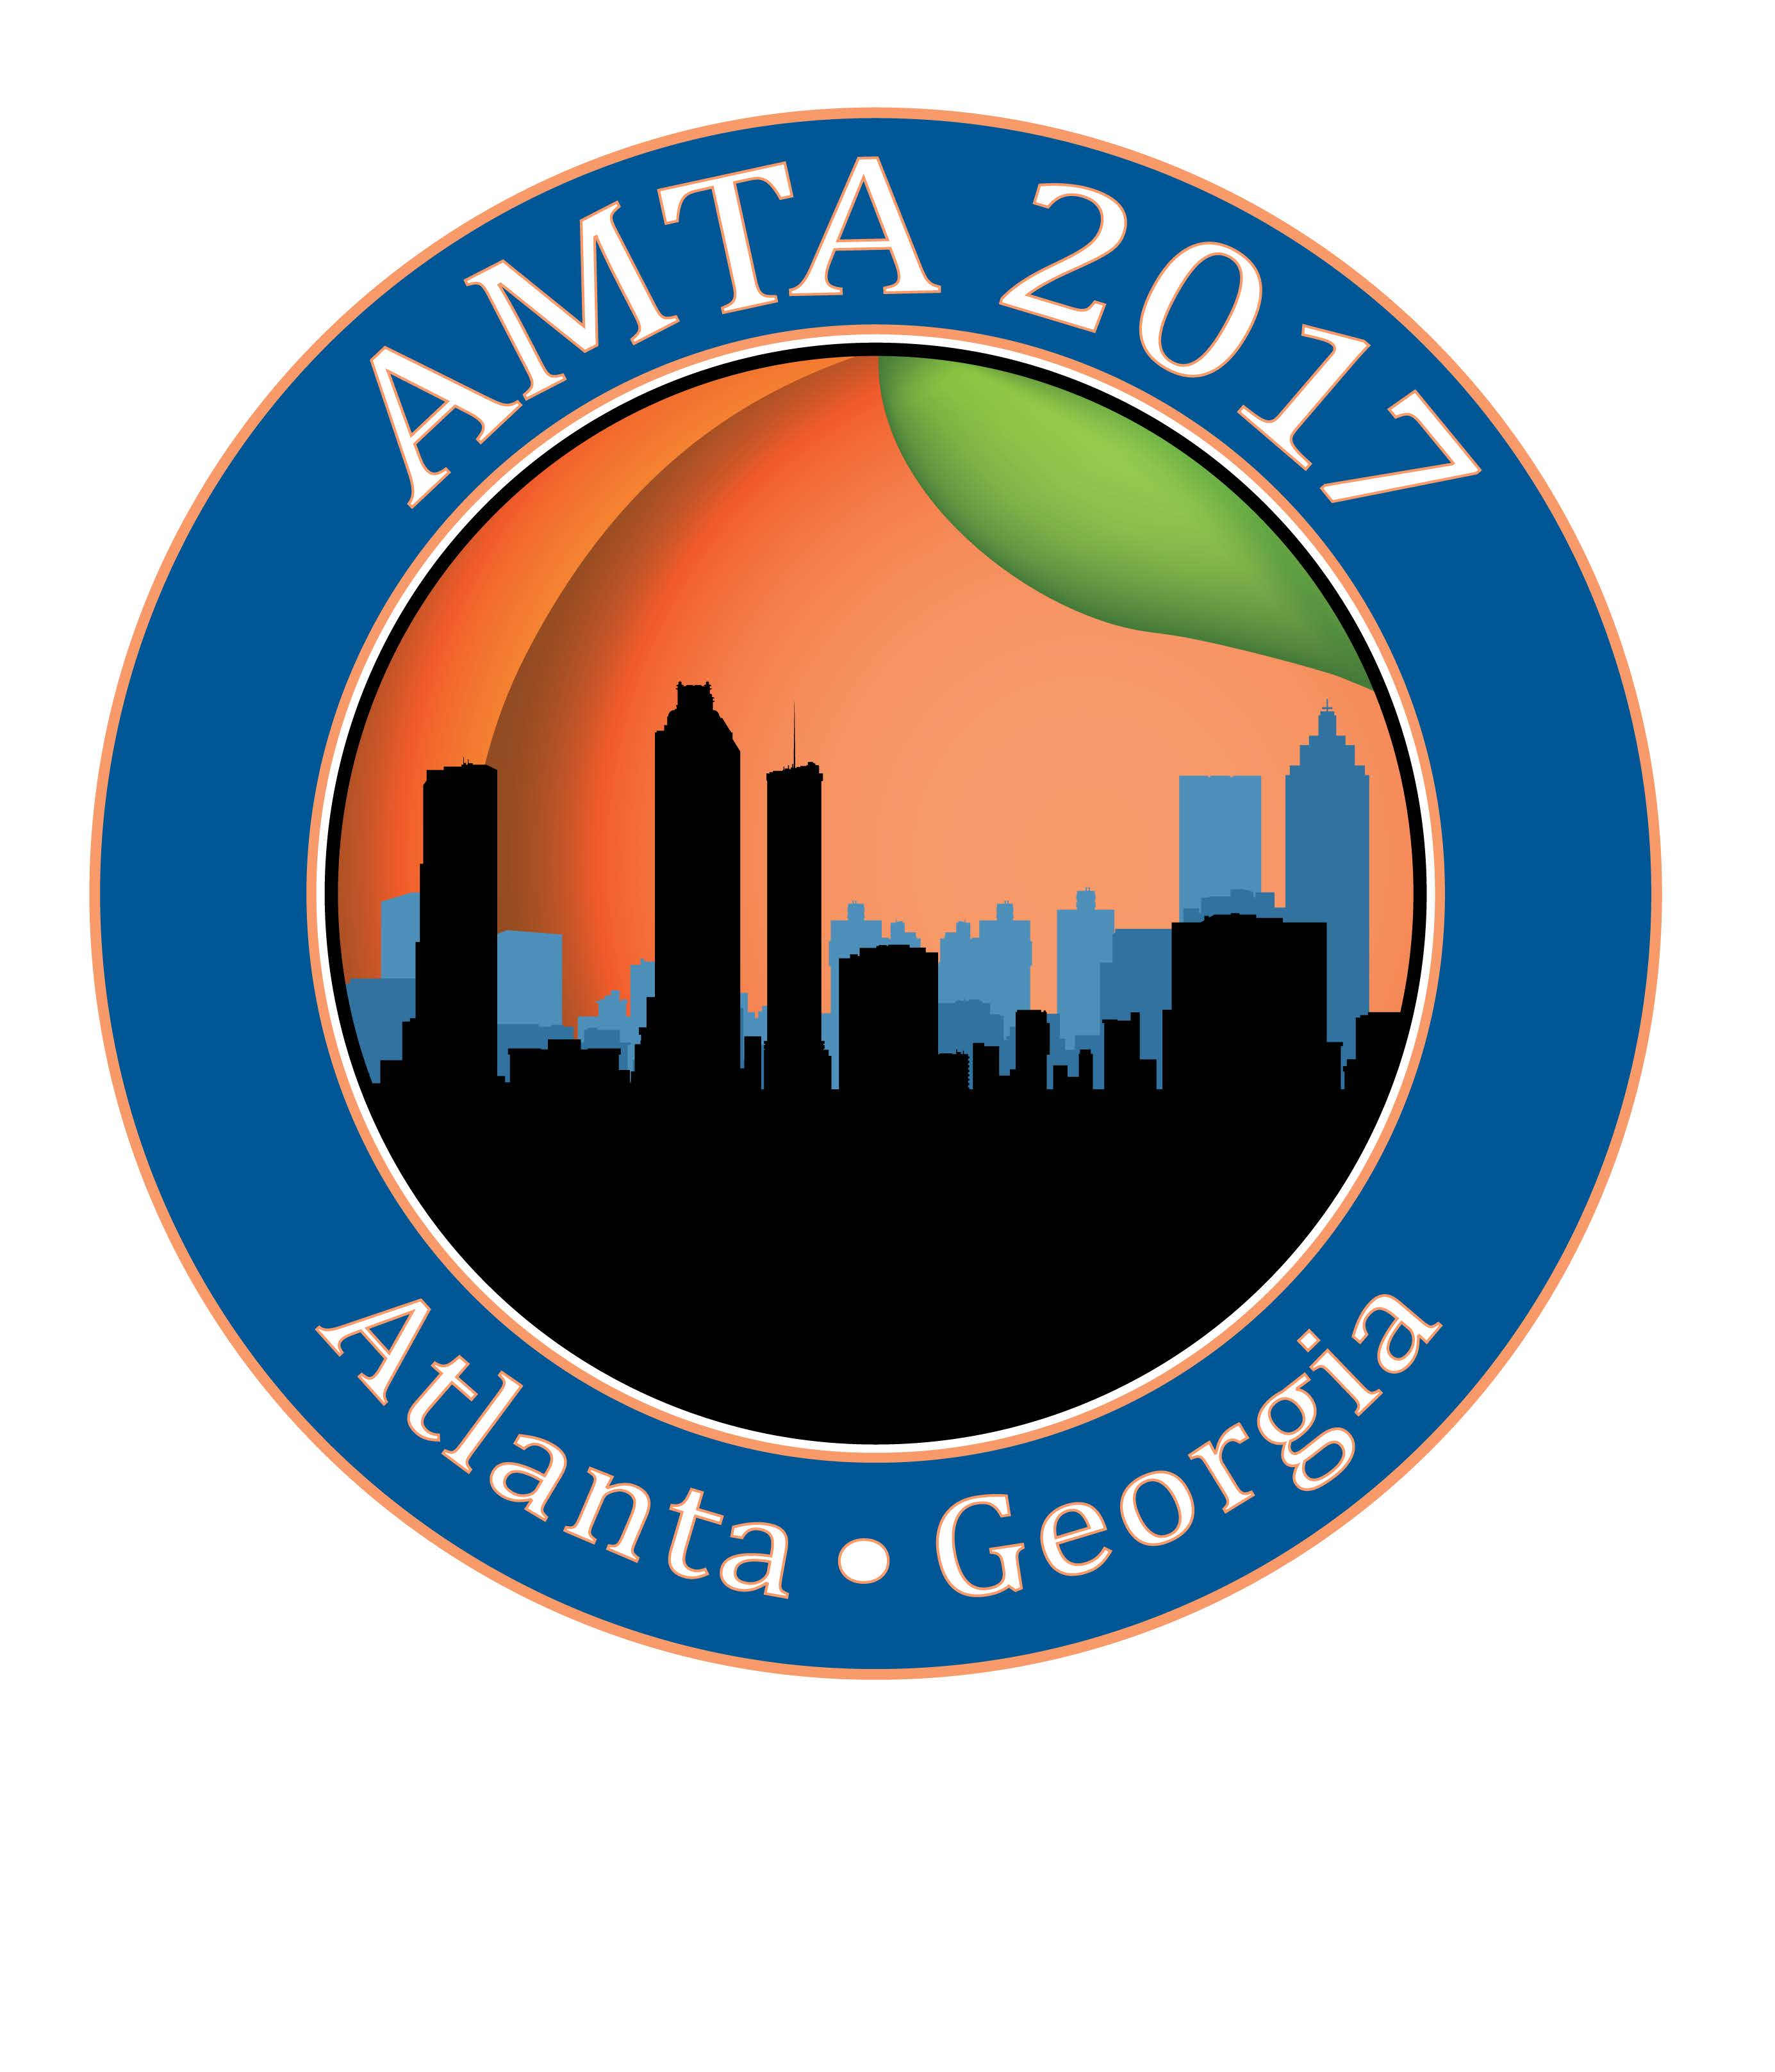 39th Annual Meeting and Symposium of the Antenna Measurement Techniques Association (AMTA)